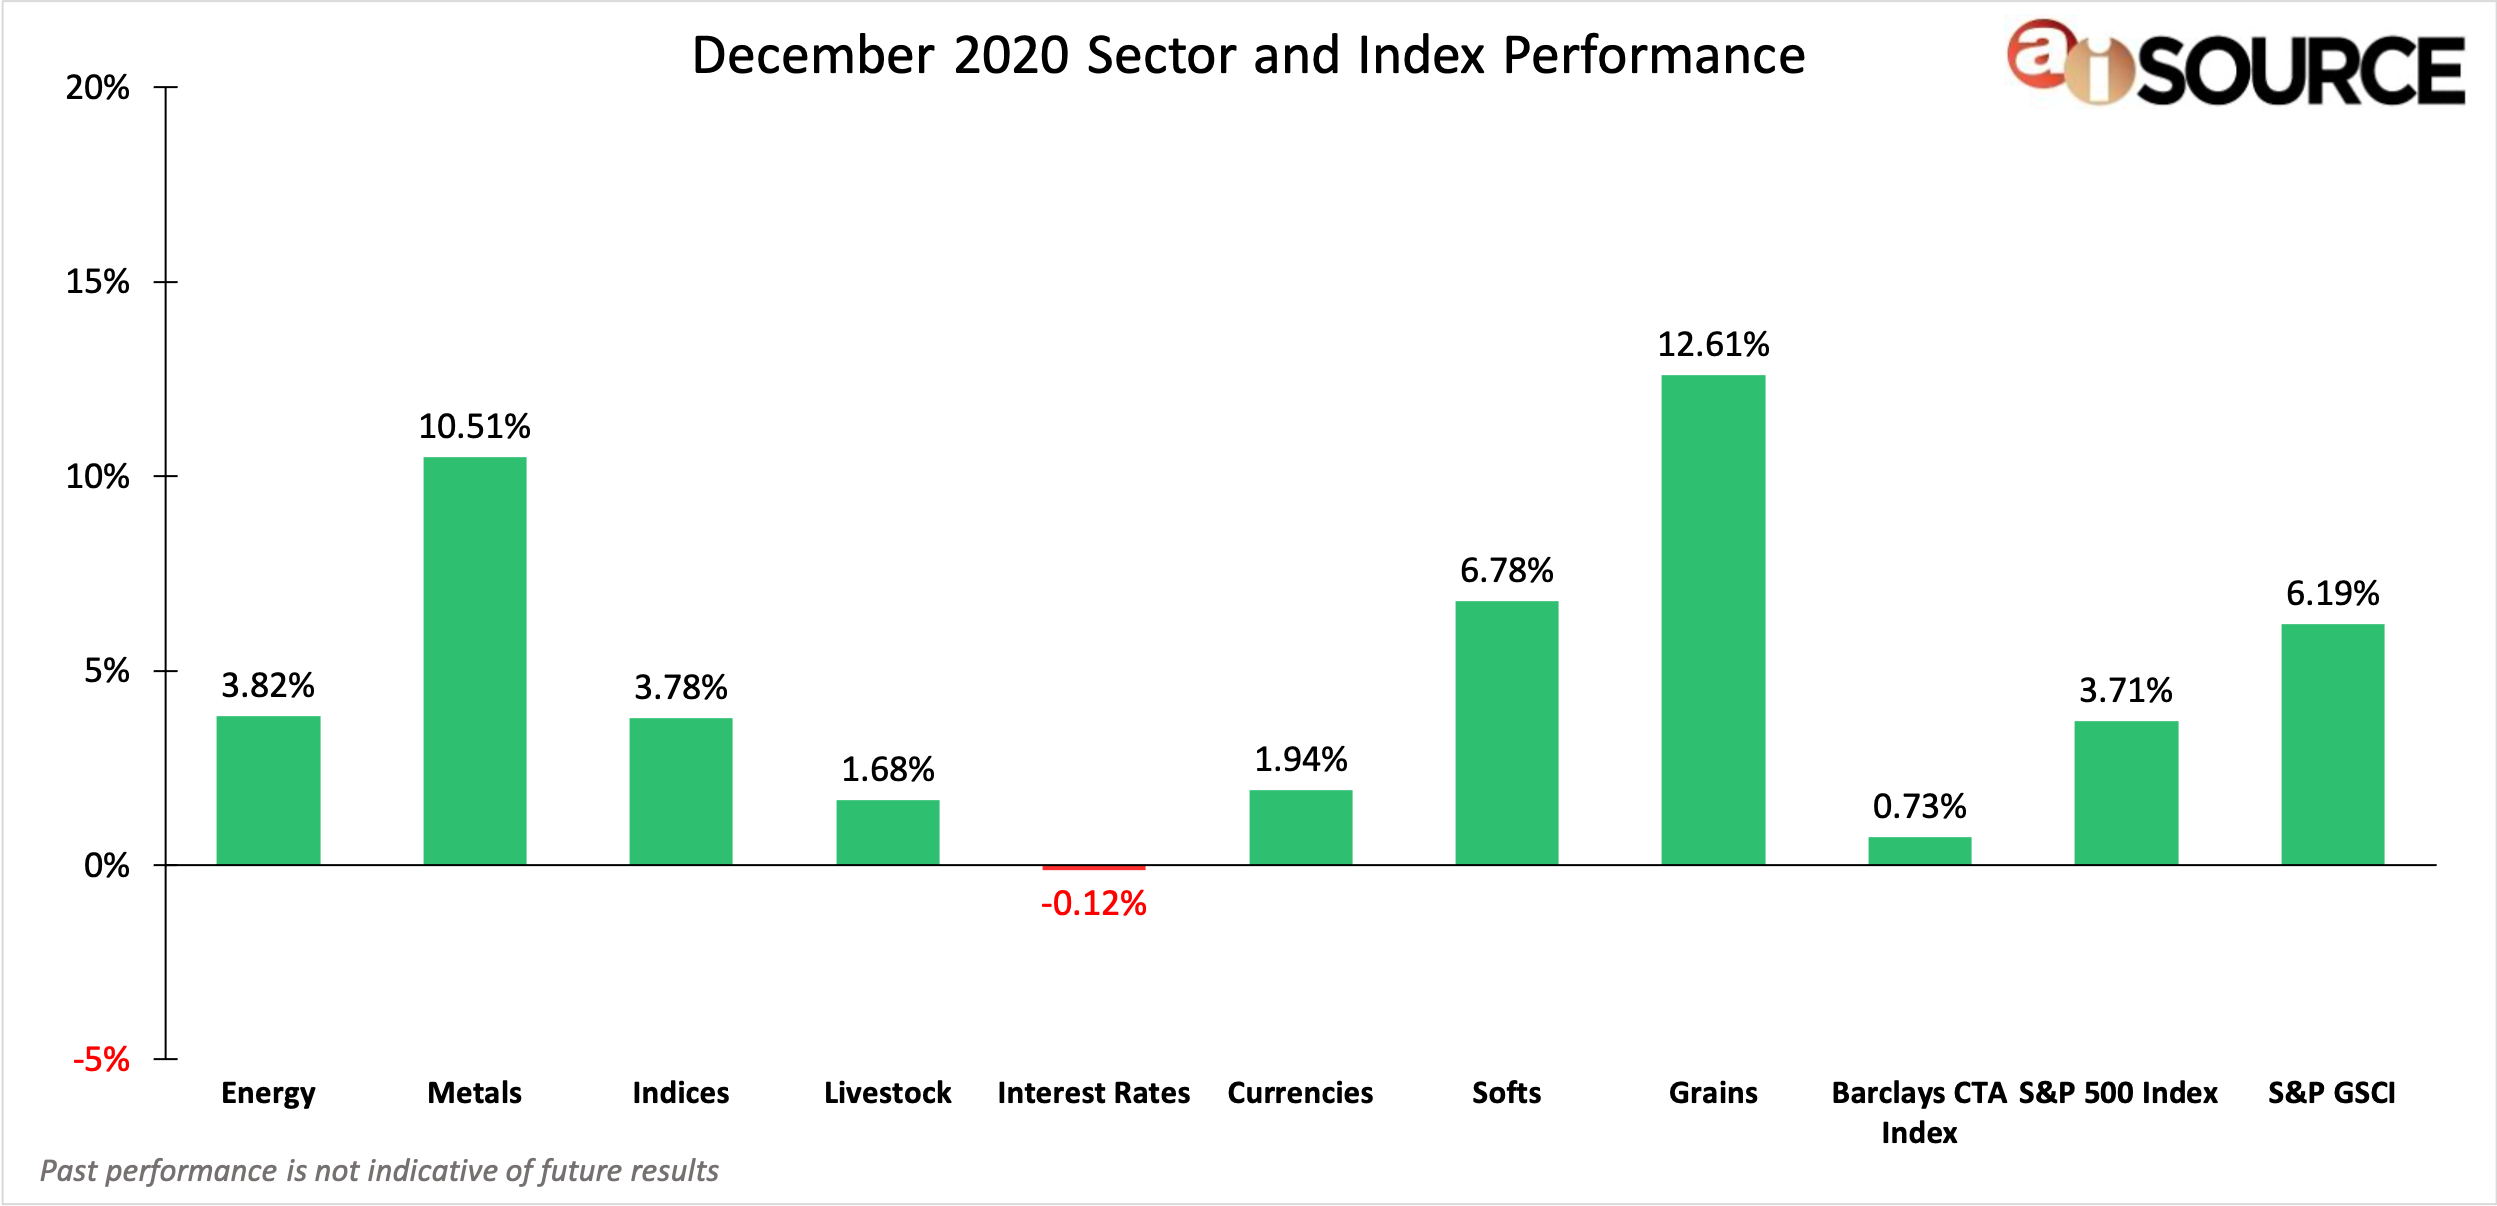 December 2020 Sector and Index Performance